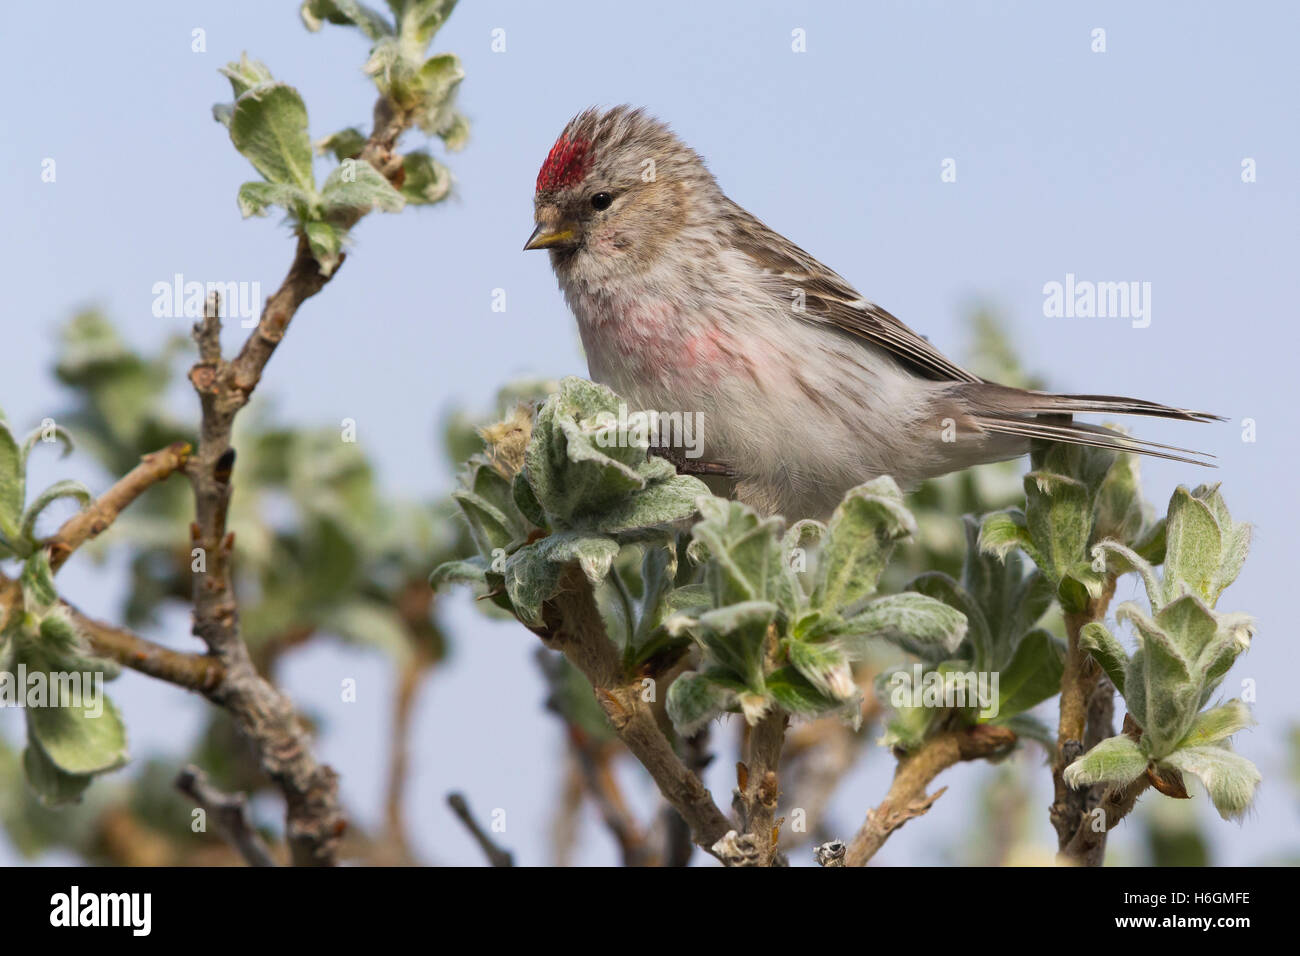 Arctic Redpoll (Acanthis hornemanni), adult perched on a branch - Stock Image